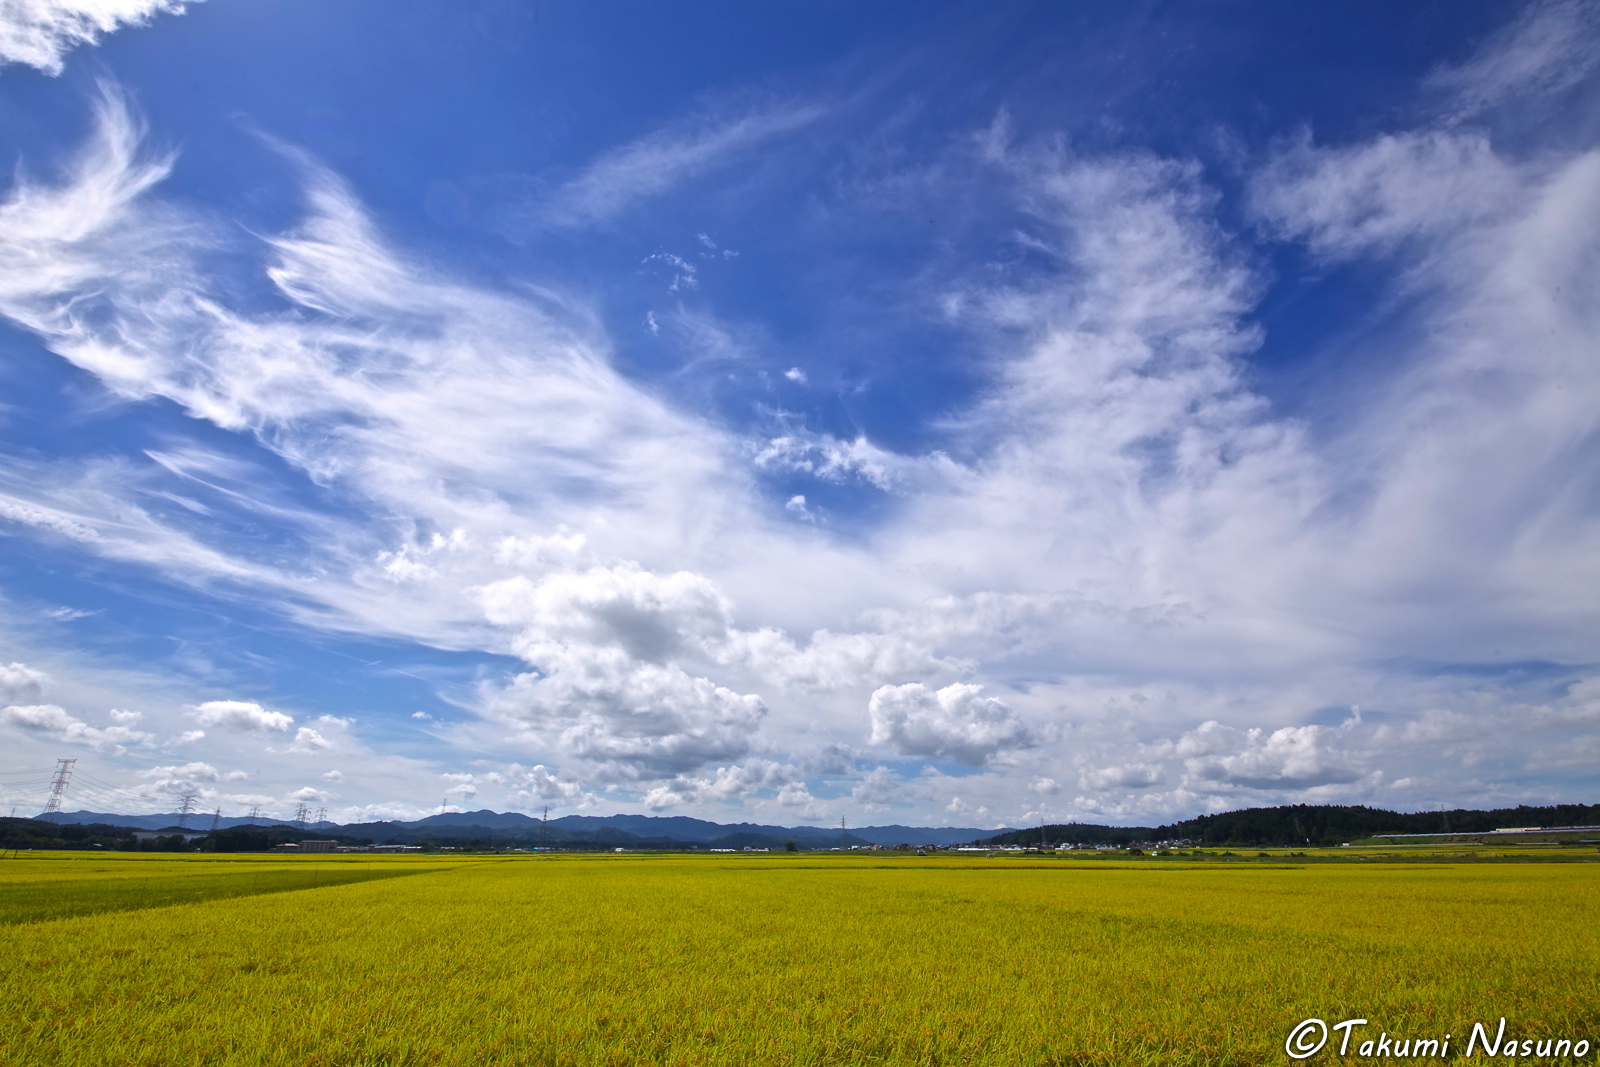 paddy-fields-from-yashirogawa-district-of-tanagura-town-in-september